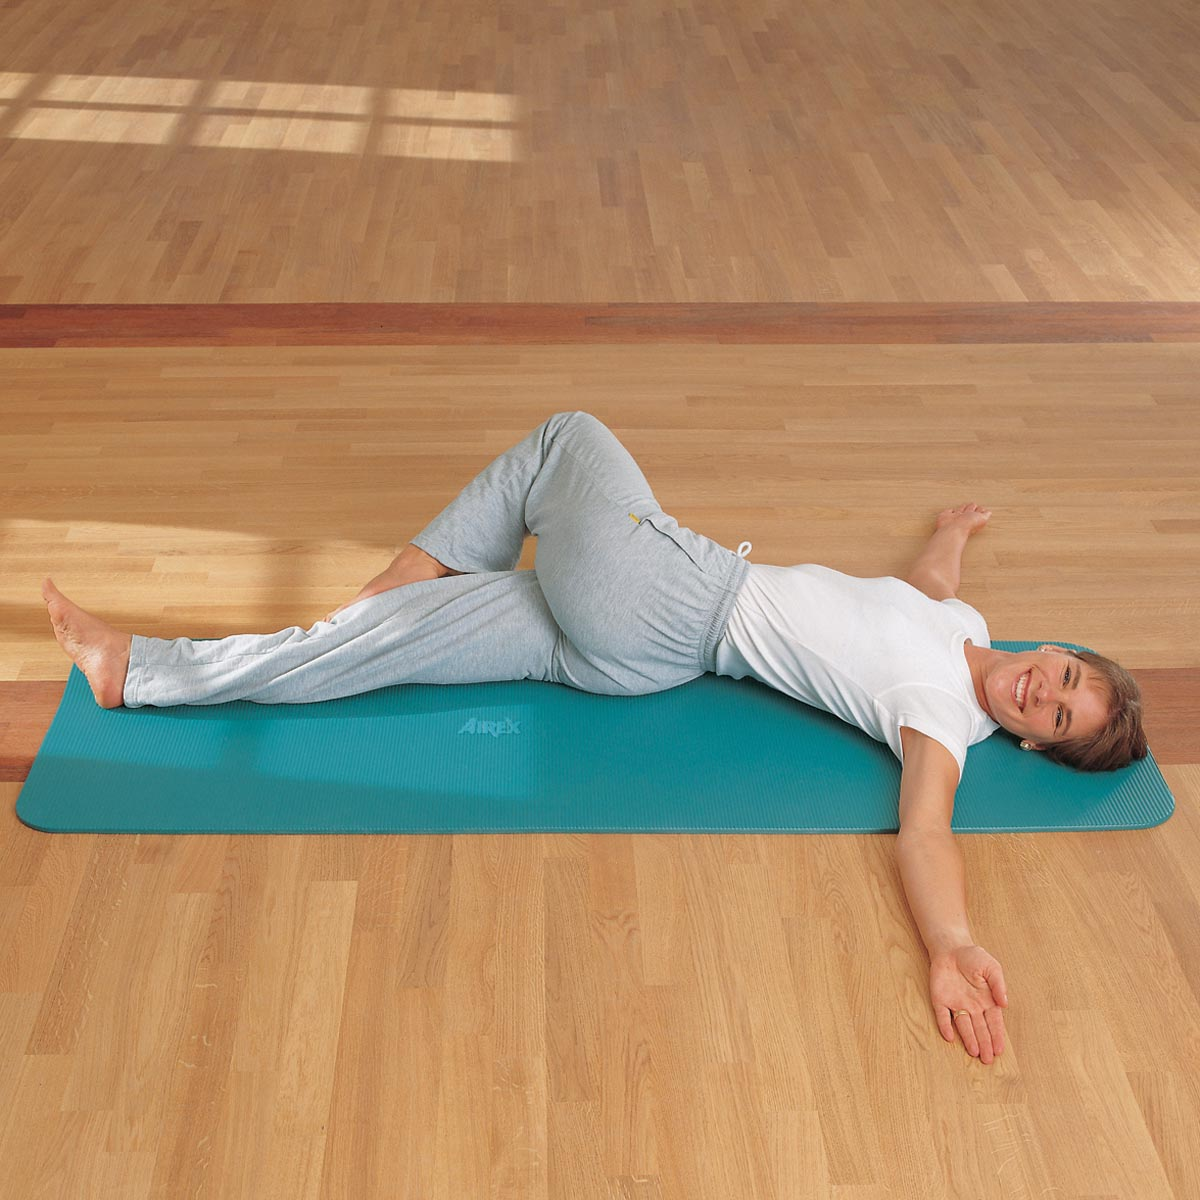 Exercise Mat Airex: Airex® Exercise Mat - Fitline 180